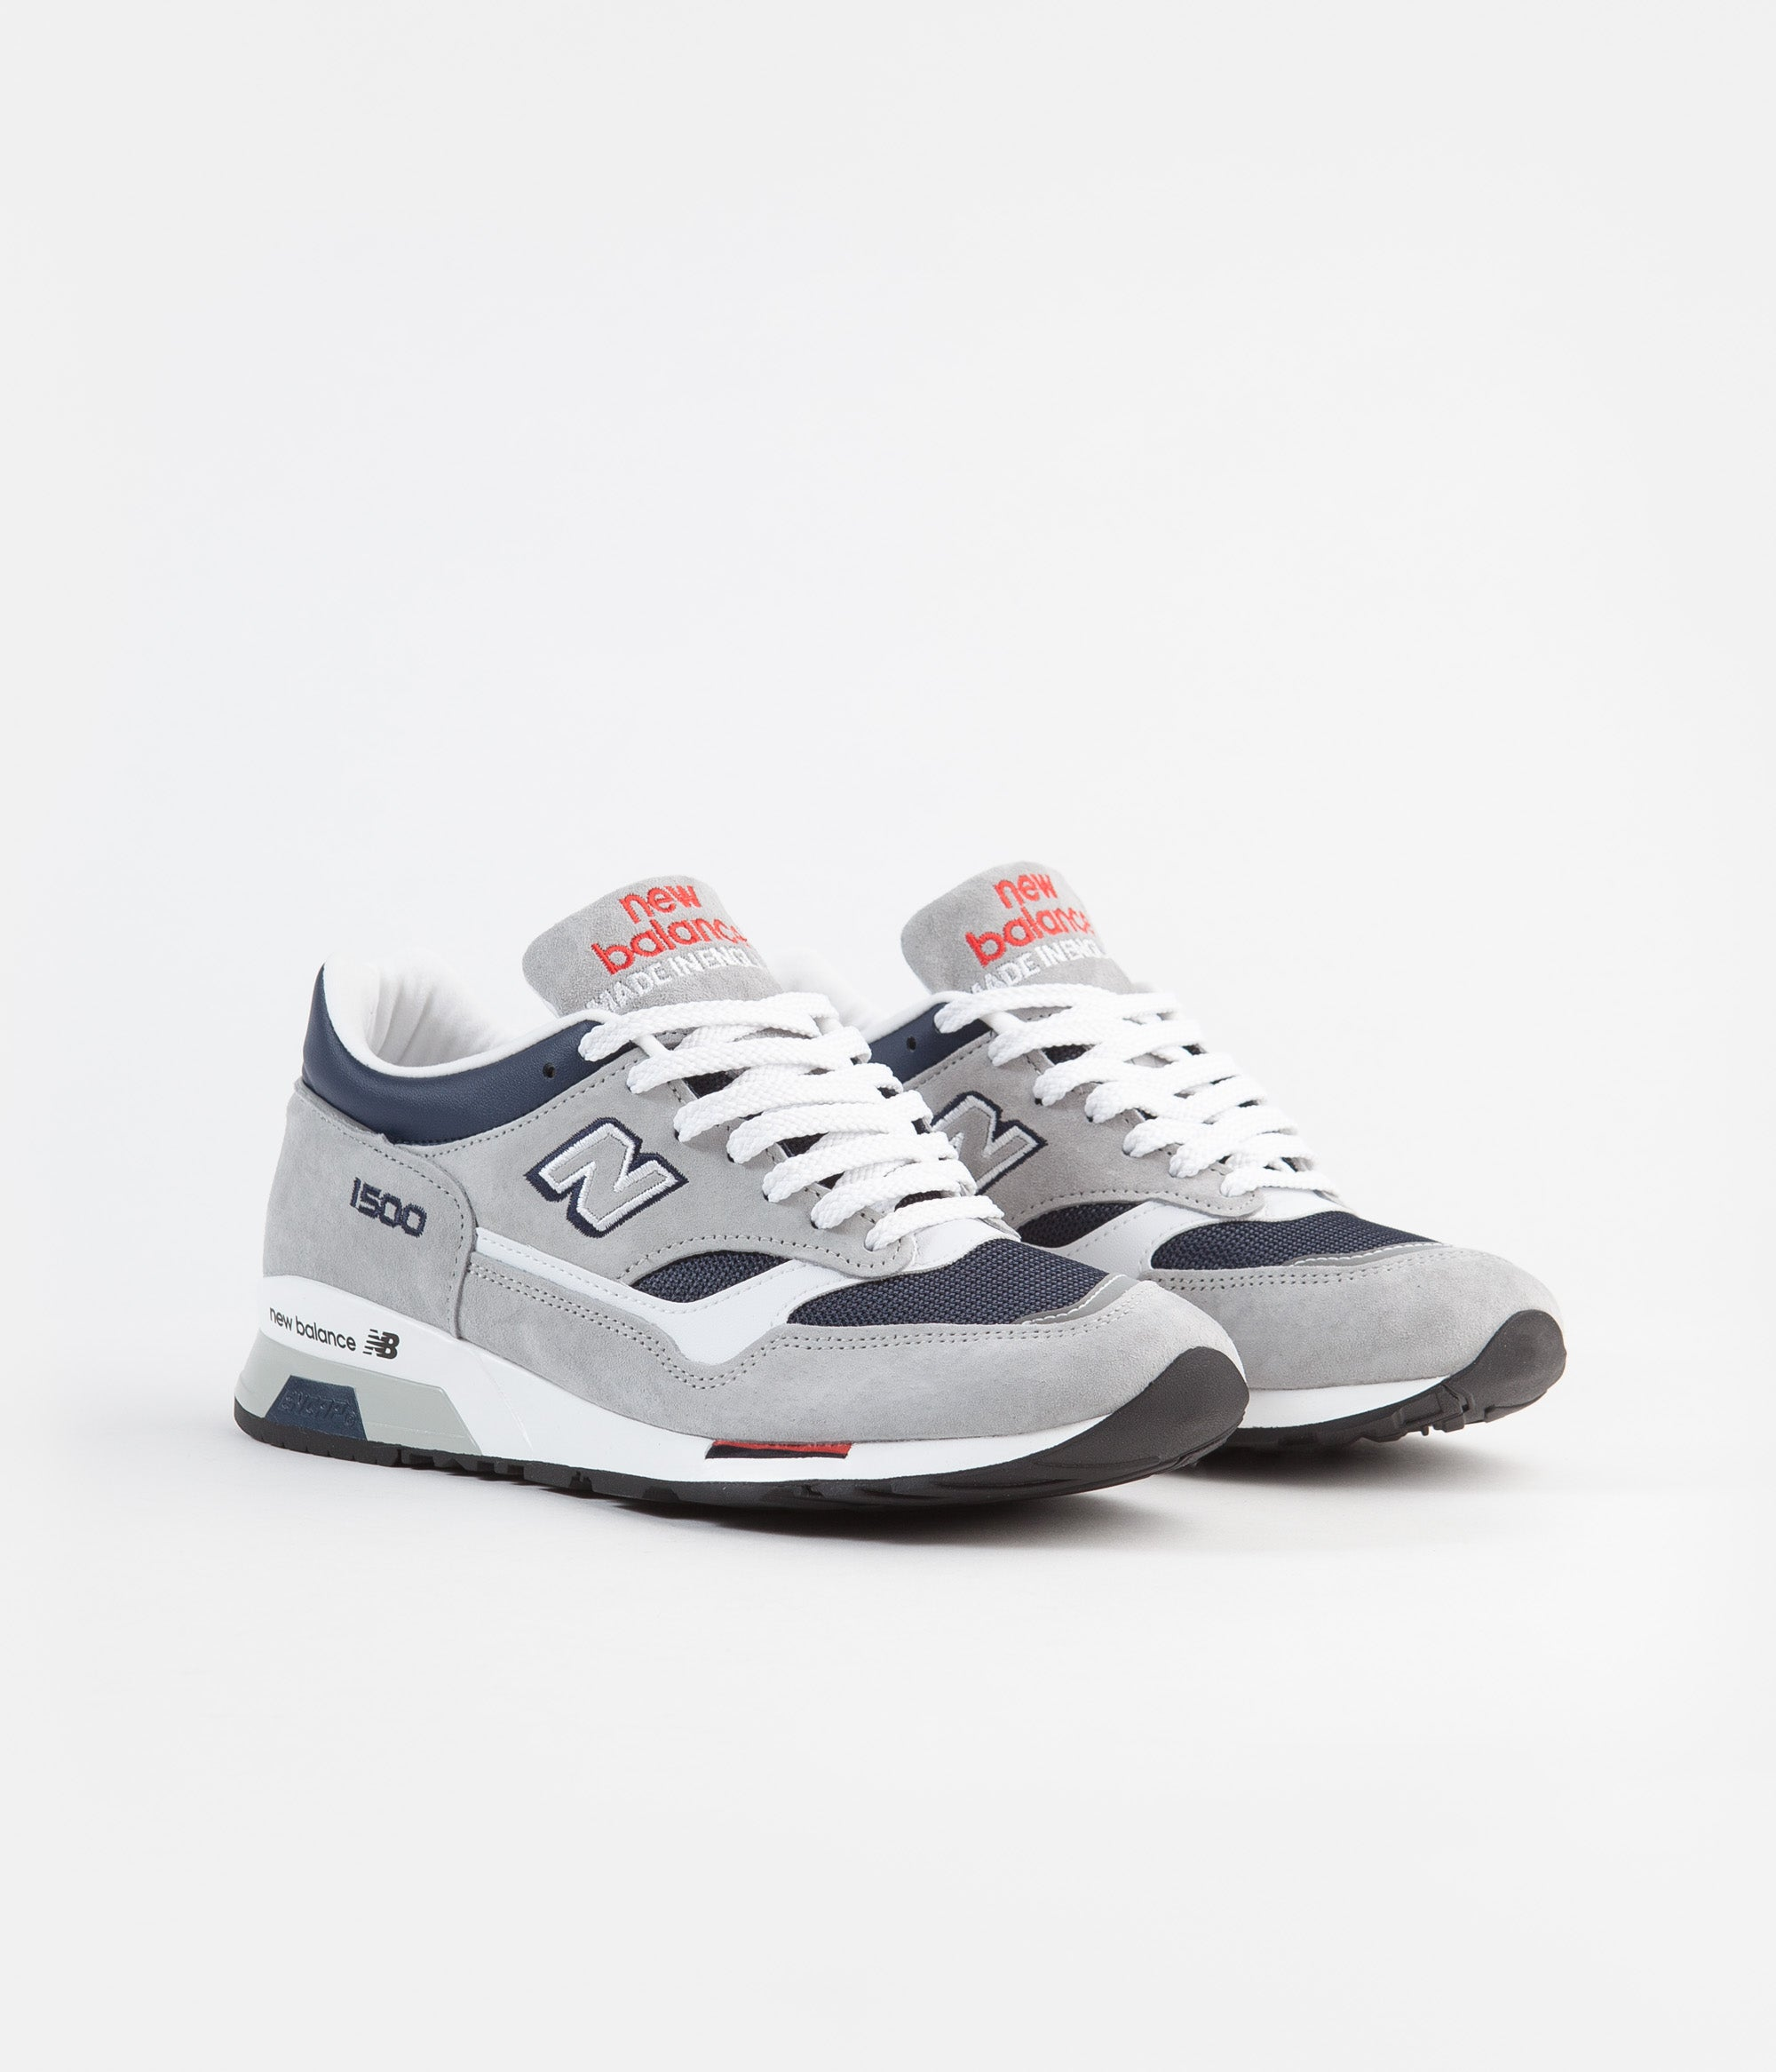 New Balance 1500 Made in UK Shoes